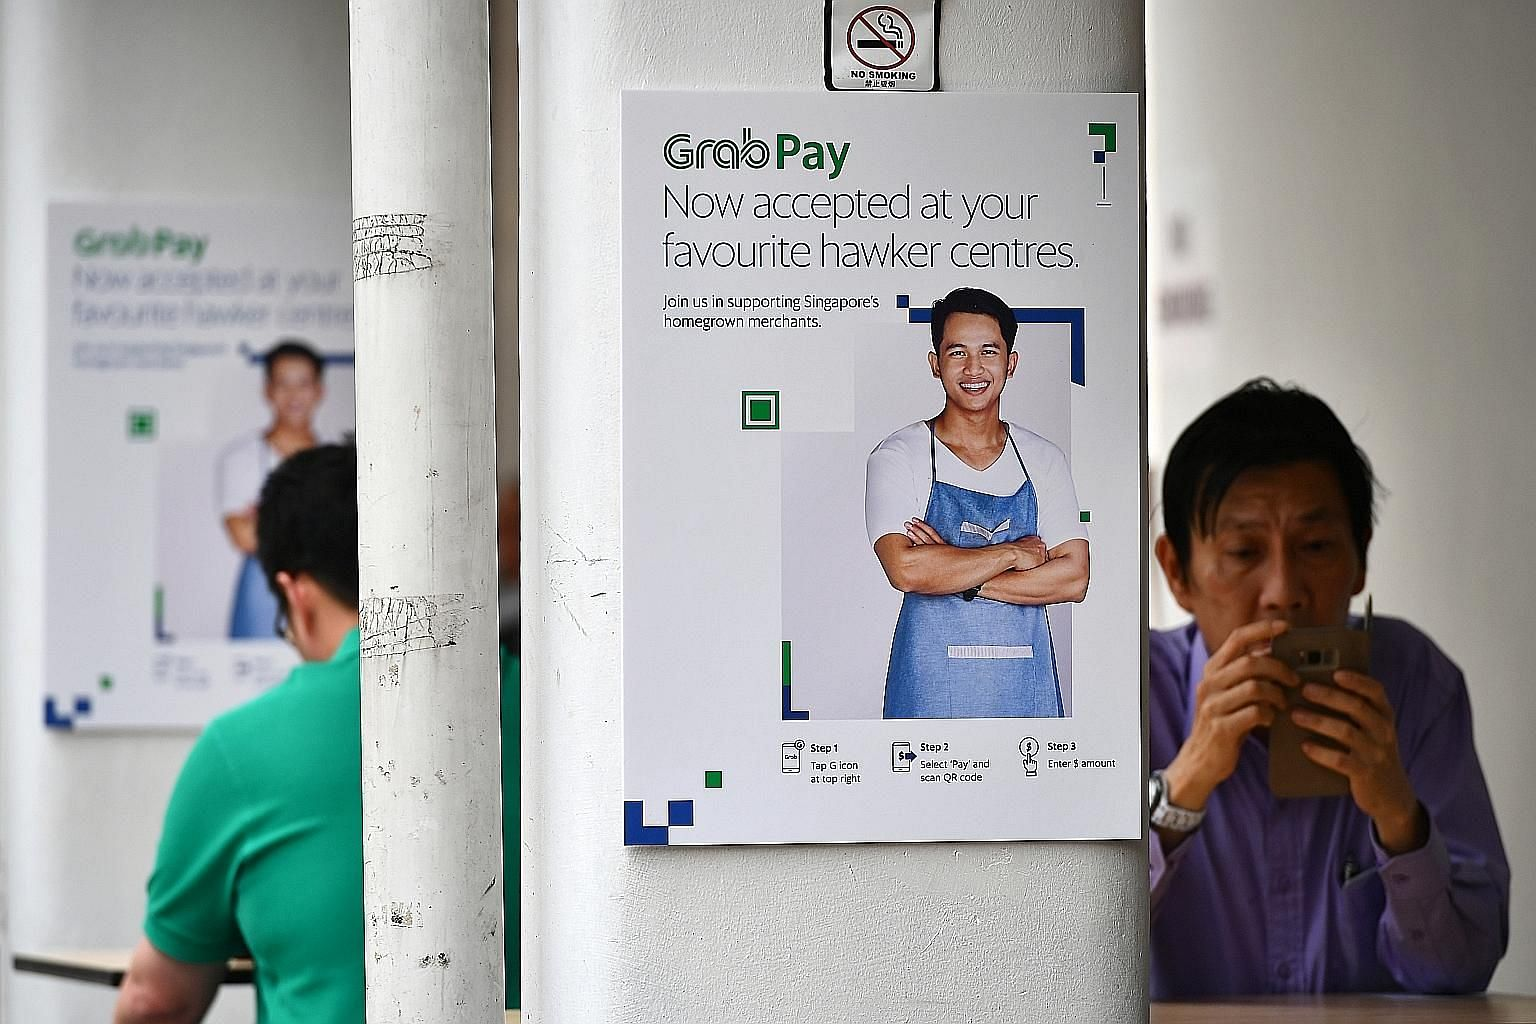 Grab has been sanctioned four times in two years for failing to protect personal data under its control, while an error at Razer recently allowed details of customers' recent orders, e-mails, phone numbers and billing and shipping addresses, among ot